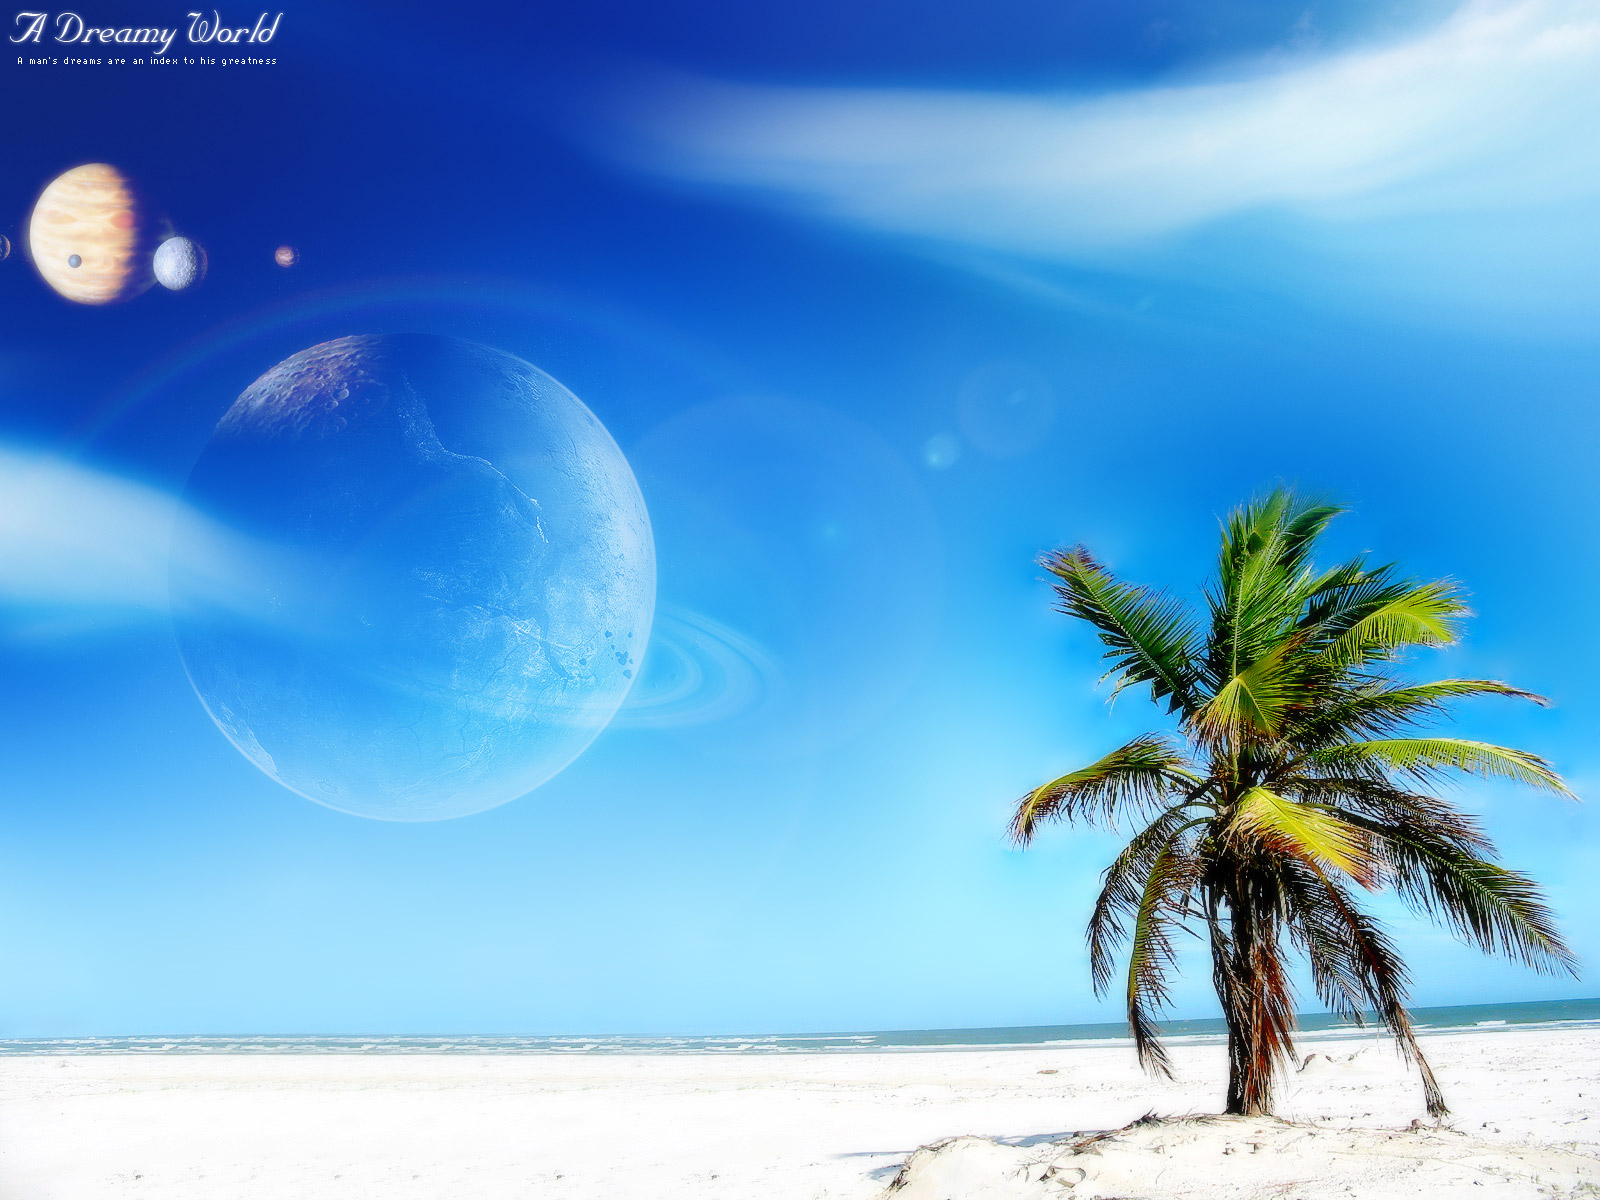 Beach Dreamy World